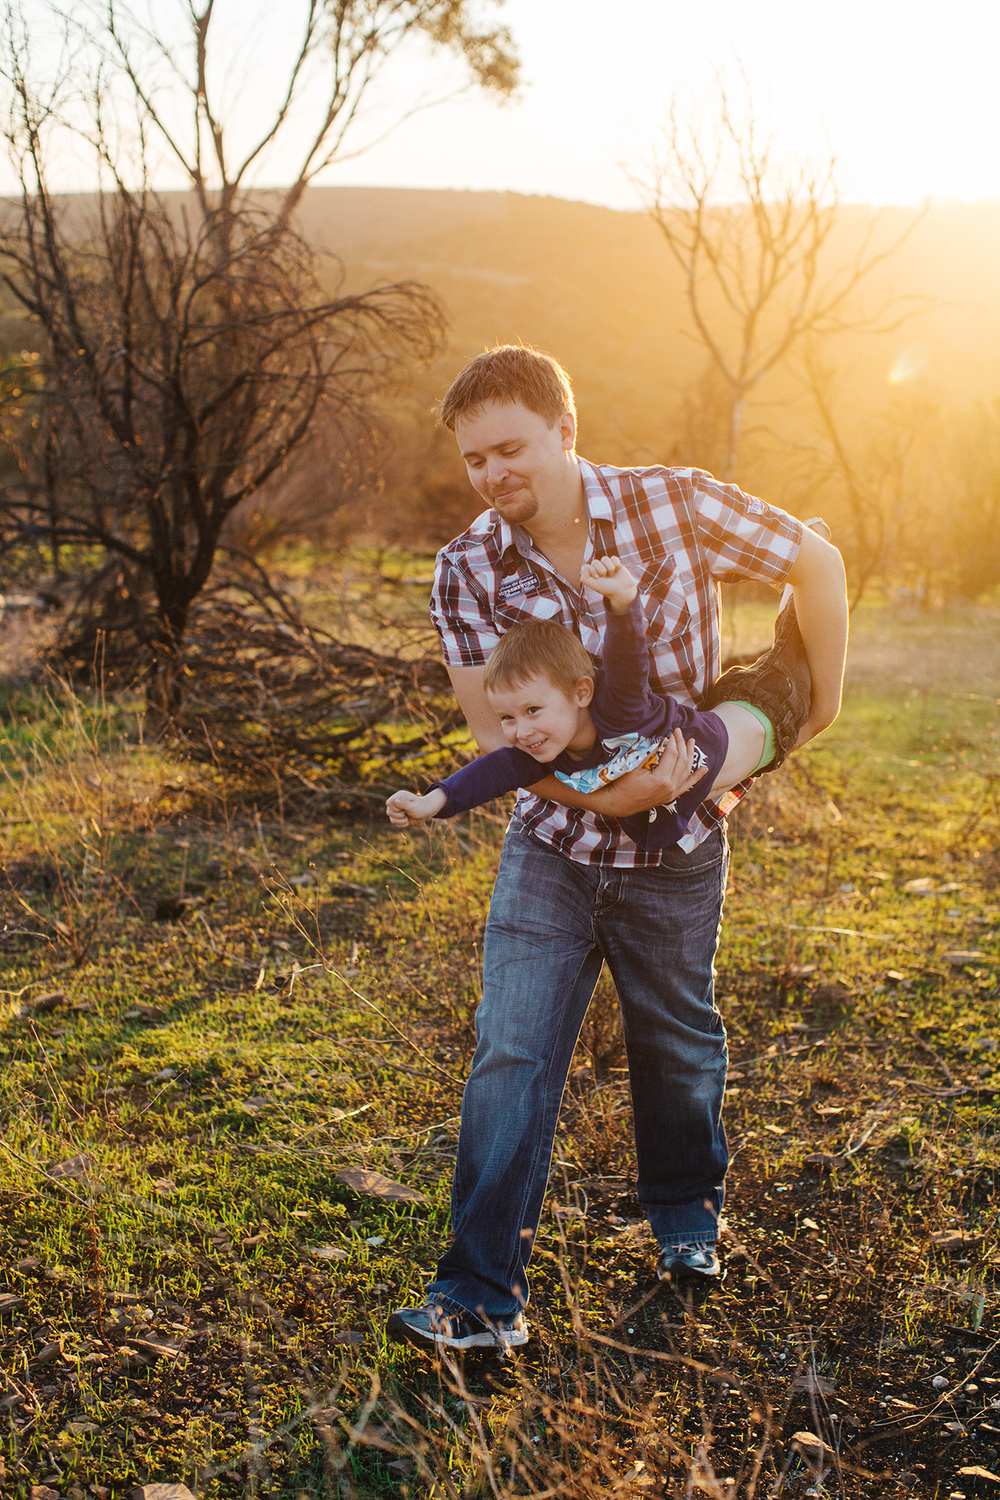 hazy-sunset-family-portrait-session 20.jpg